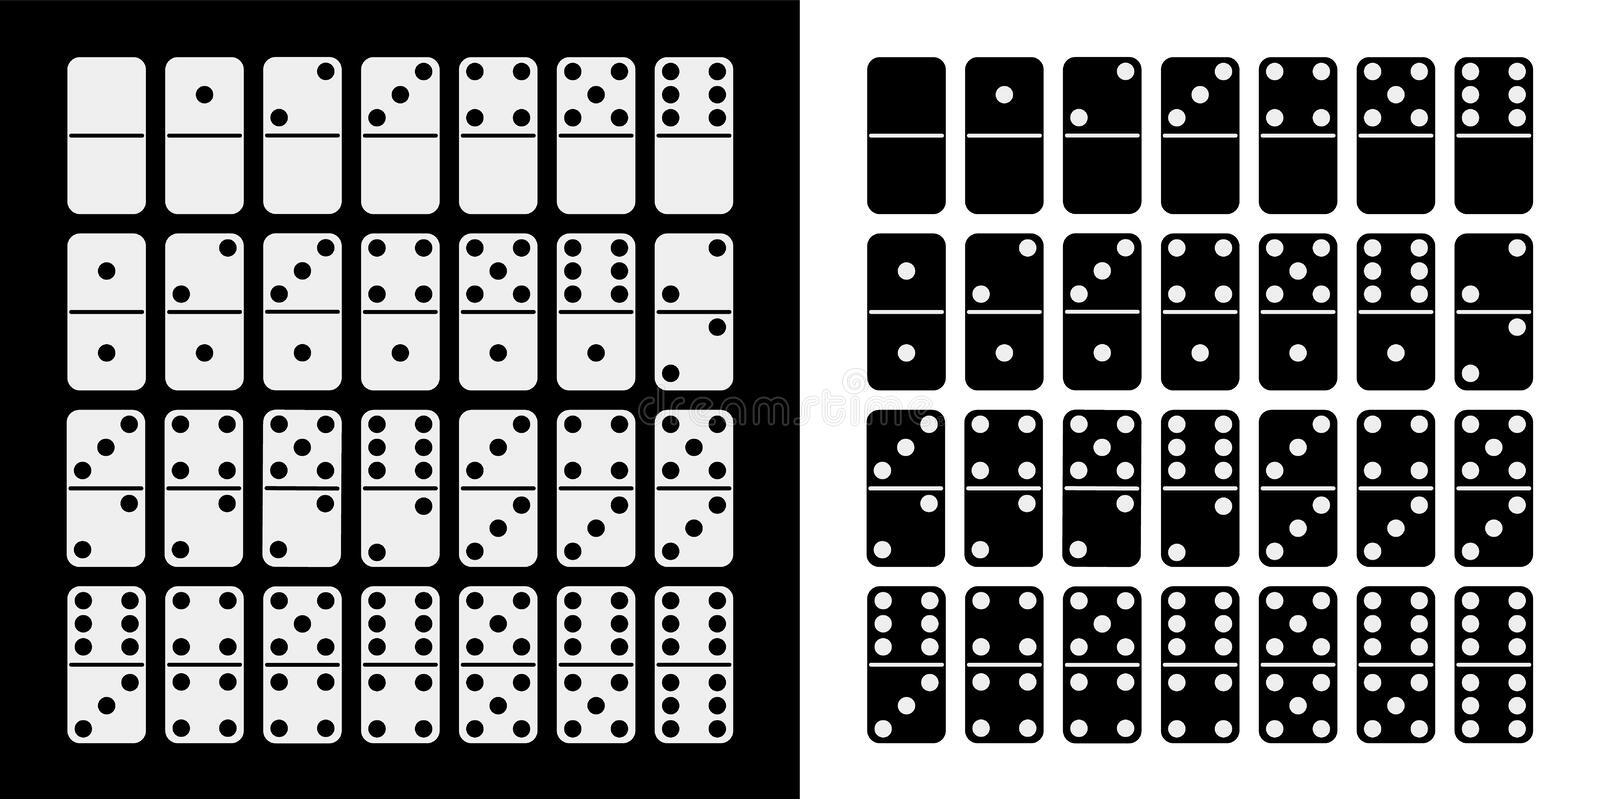 Black and white domino full set in flat design style. vector illustration